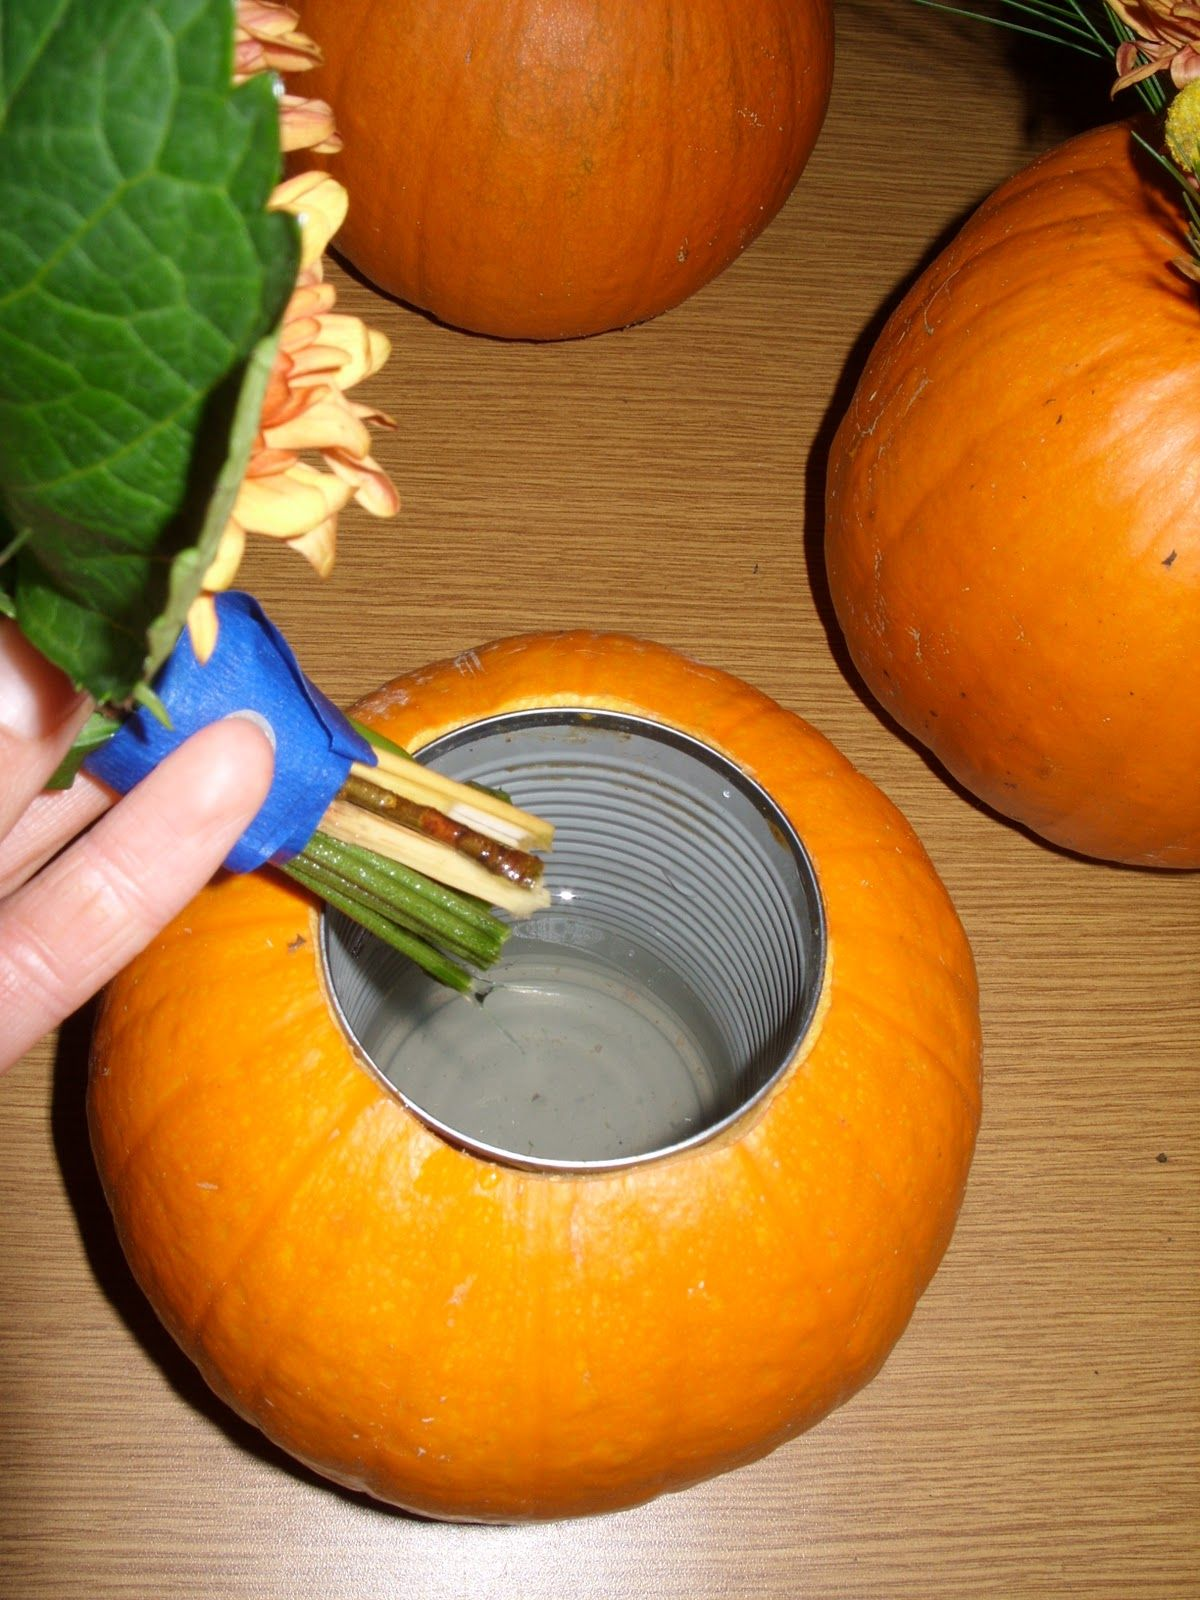 Add a can inside a pumpkin to hold water great for an autumn autumnal flower arrangement inspiration diy pumpkin flower vase tutorial insert soup can into pumpkin and add water place the flowers inside so reviewsmspy